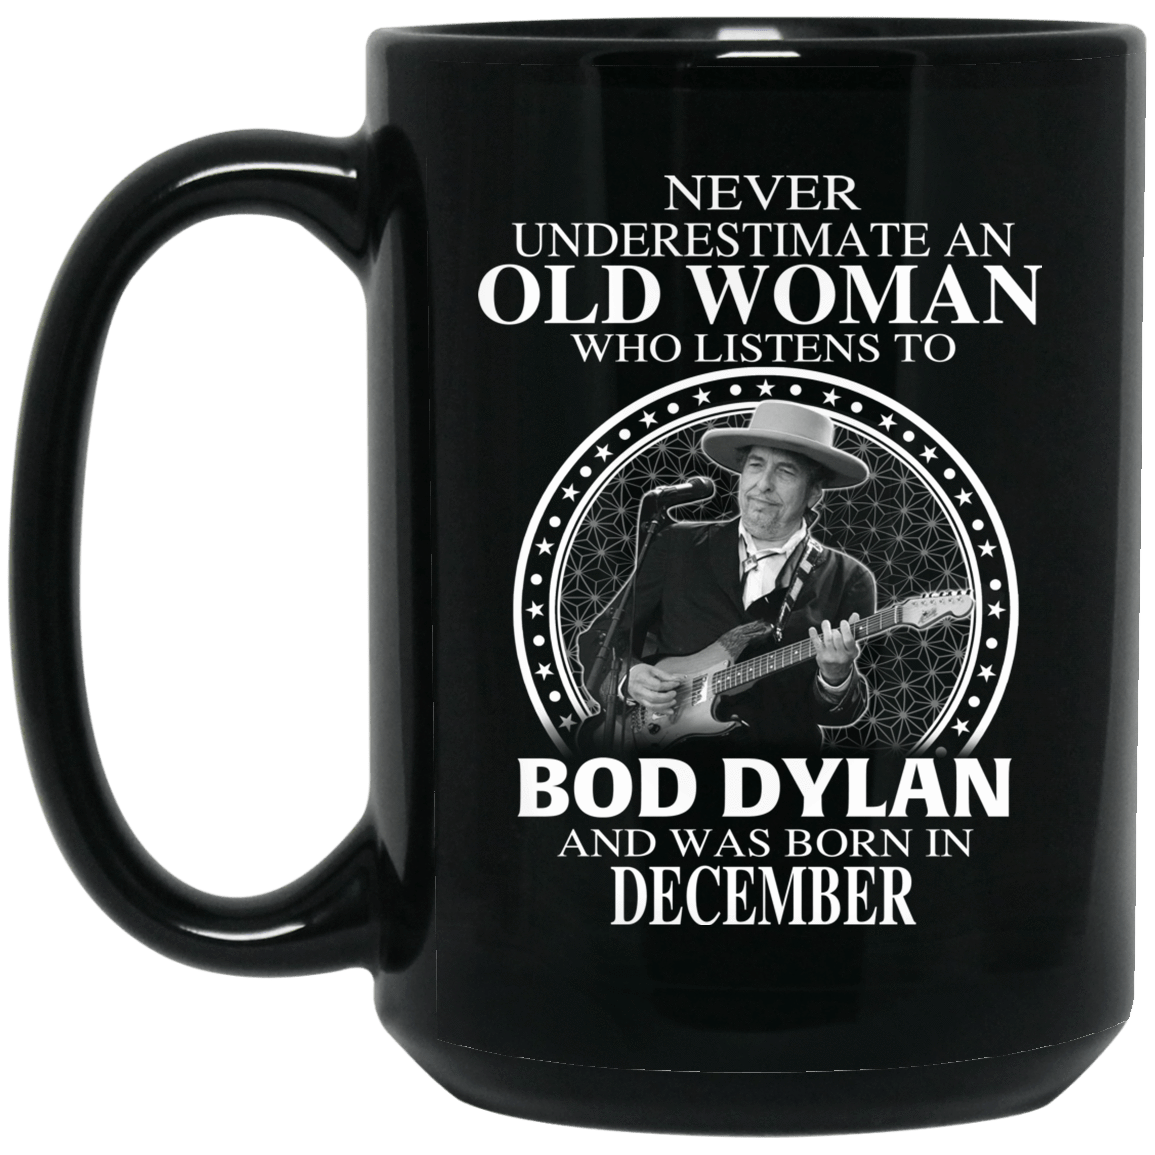 An Old Woman Who Listens To Bob Dylan And Was Born In December Mug 1066-10182-76154147-49311 - Tee Ript